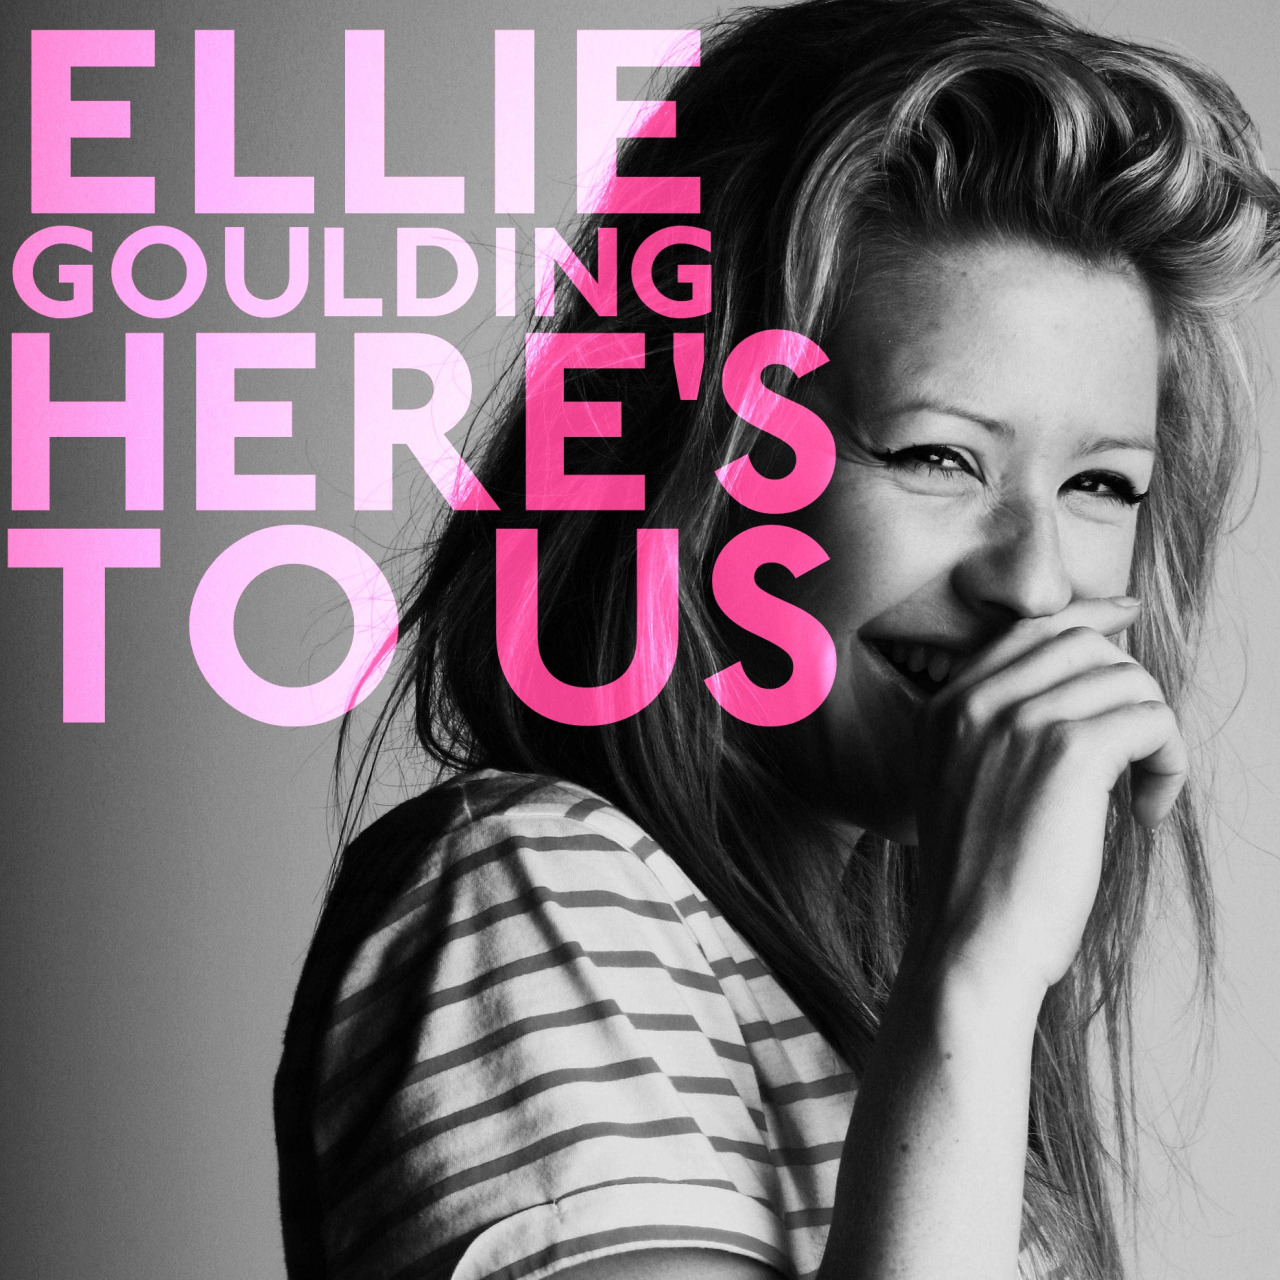 Ellie goulding heres to us mp3 download.